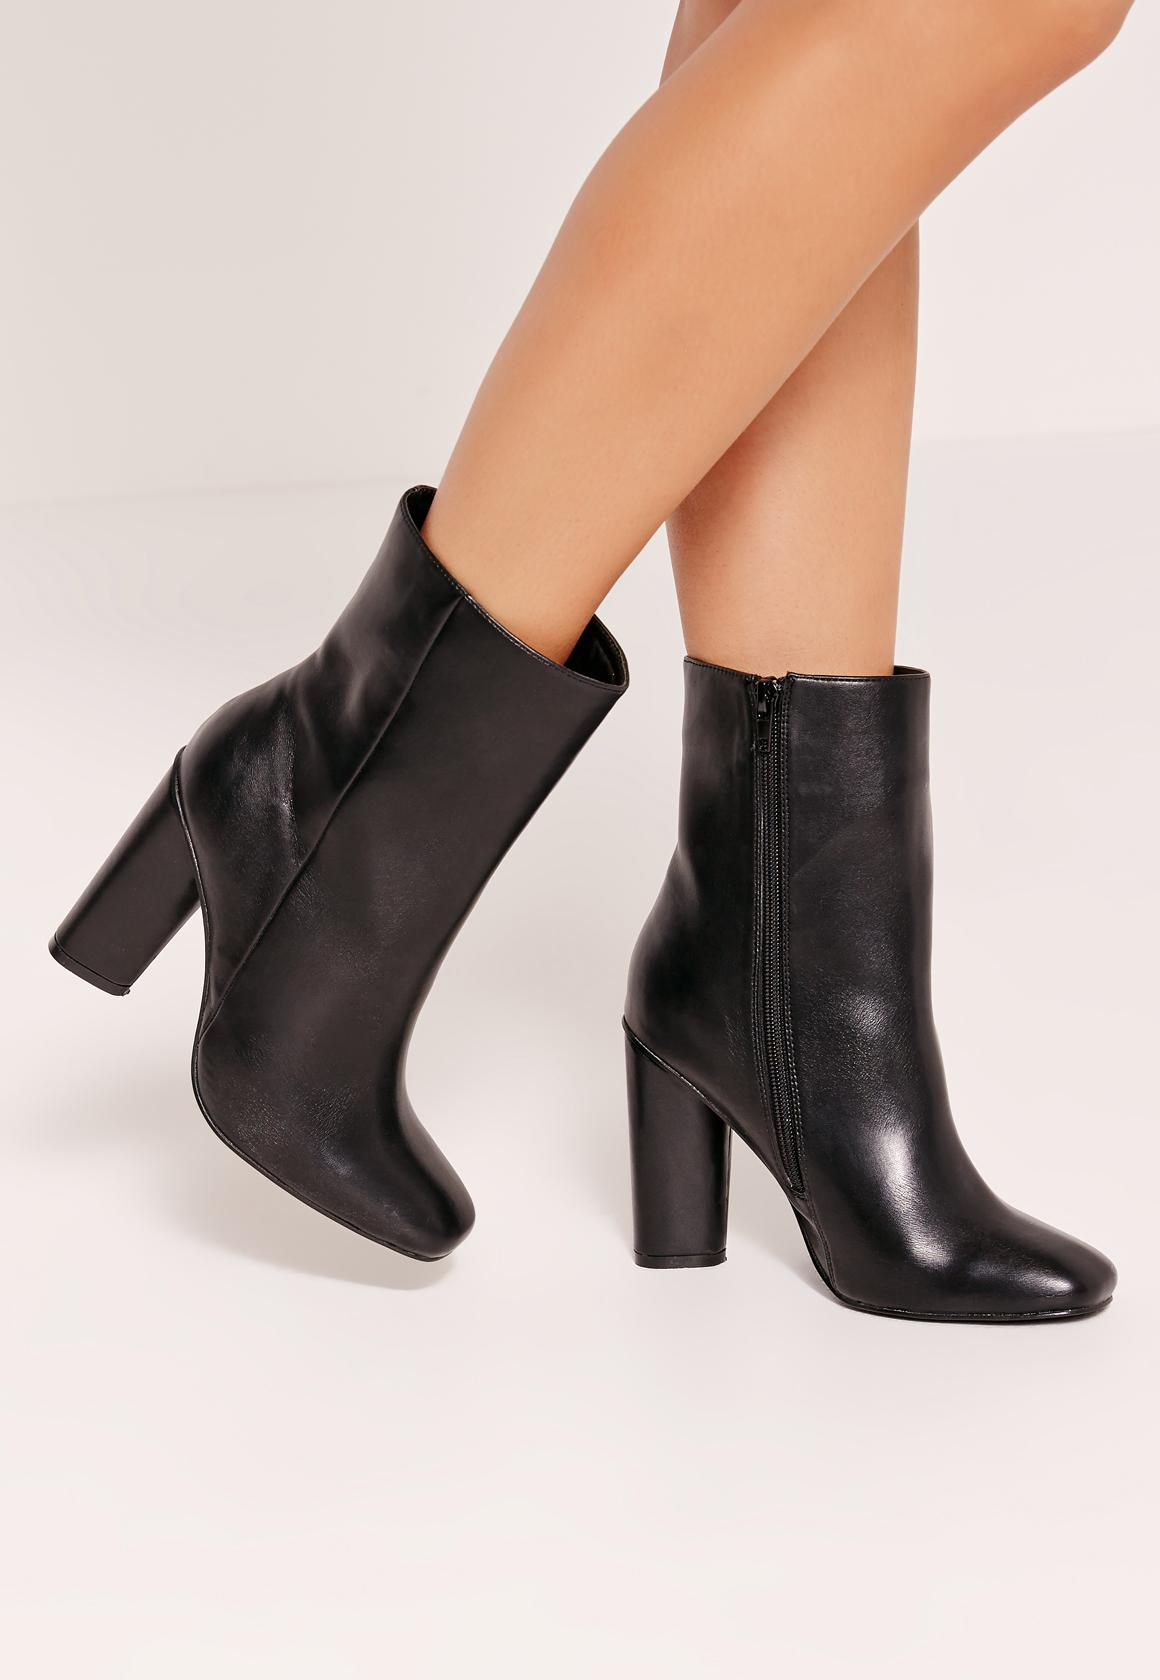 Faux Leather Heeled Ankle Boots Black - Missguided